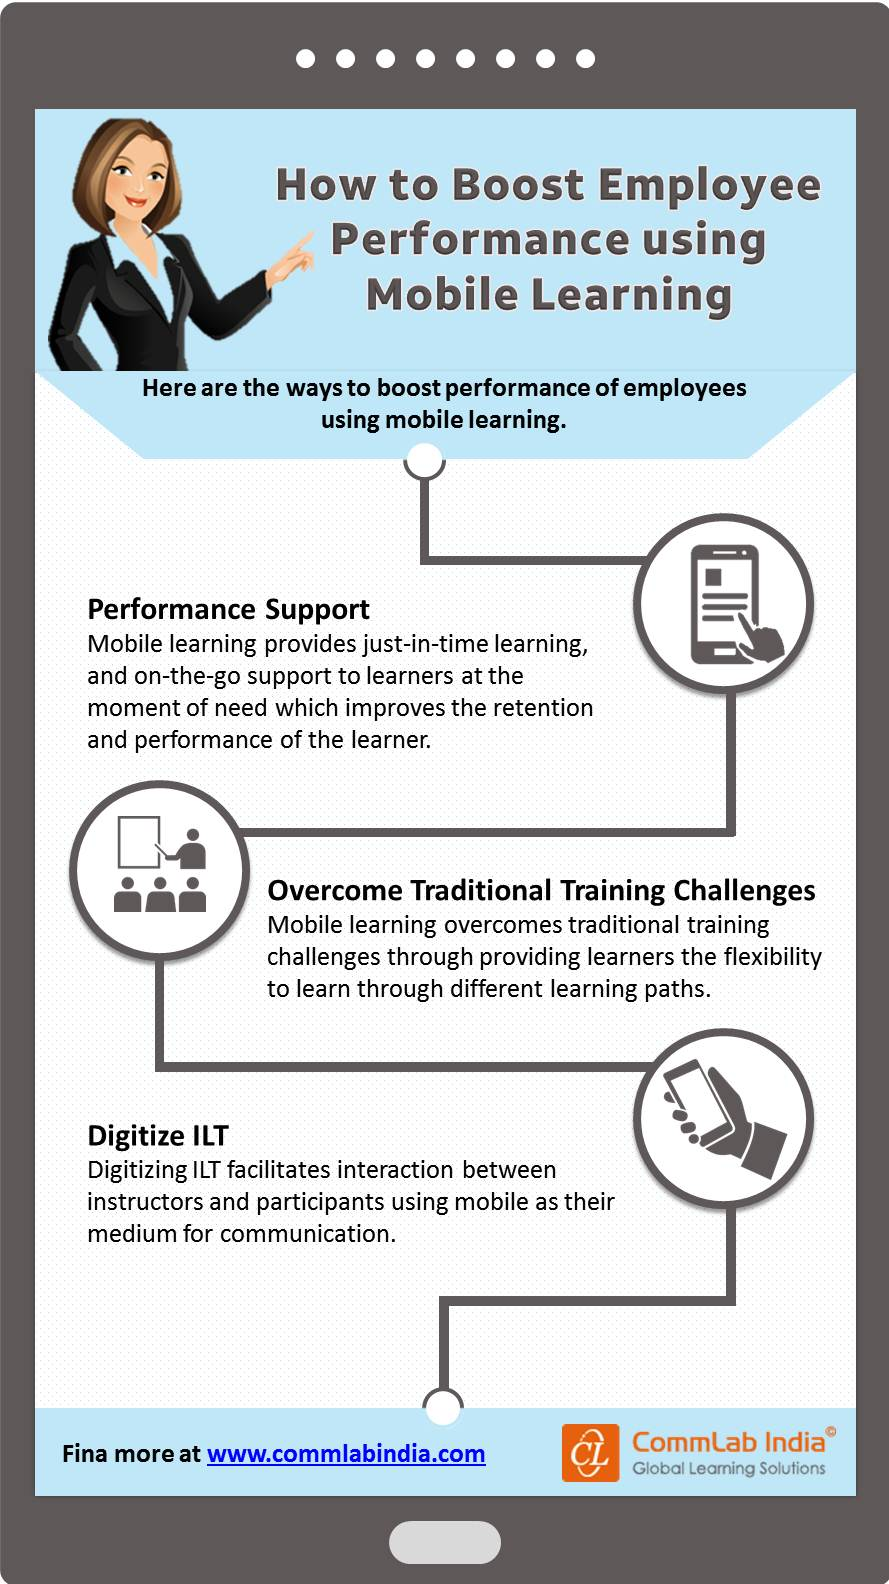 How to Boost Employee Performance Using Mobile Learning [Infographic]